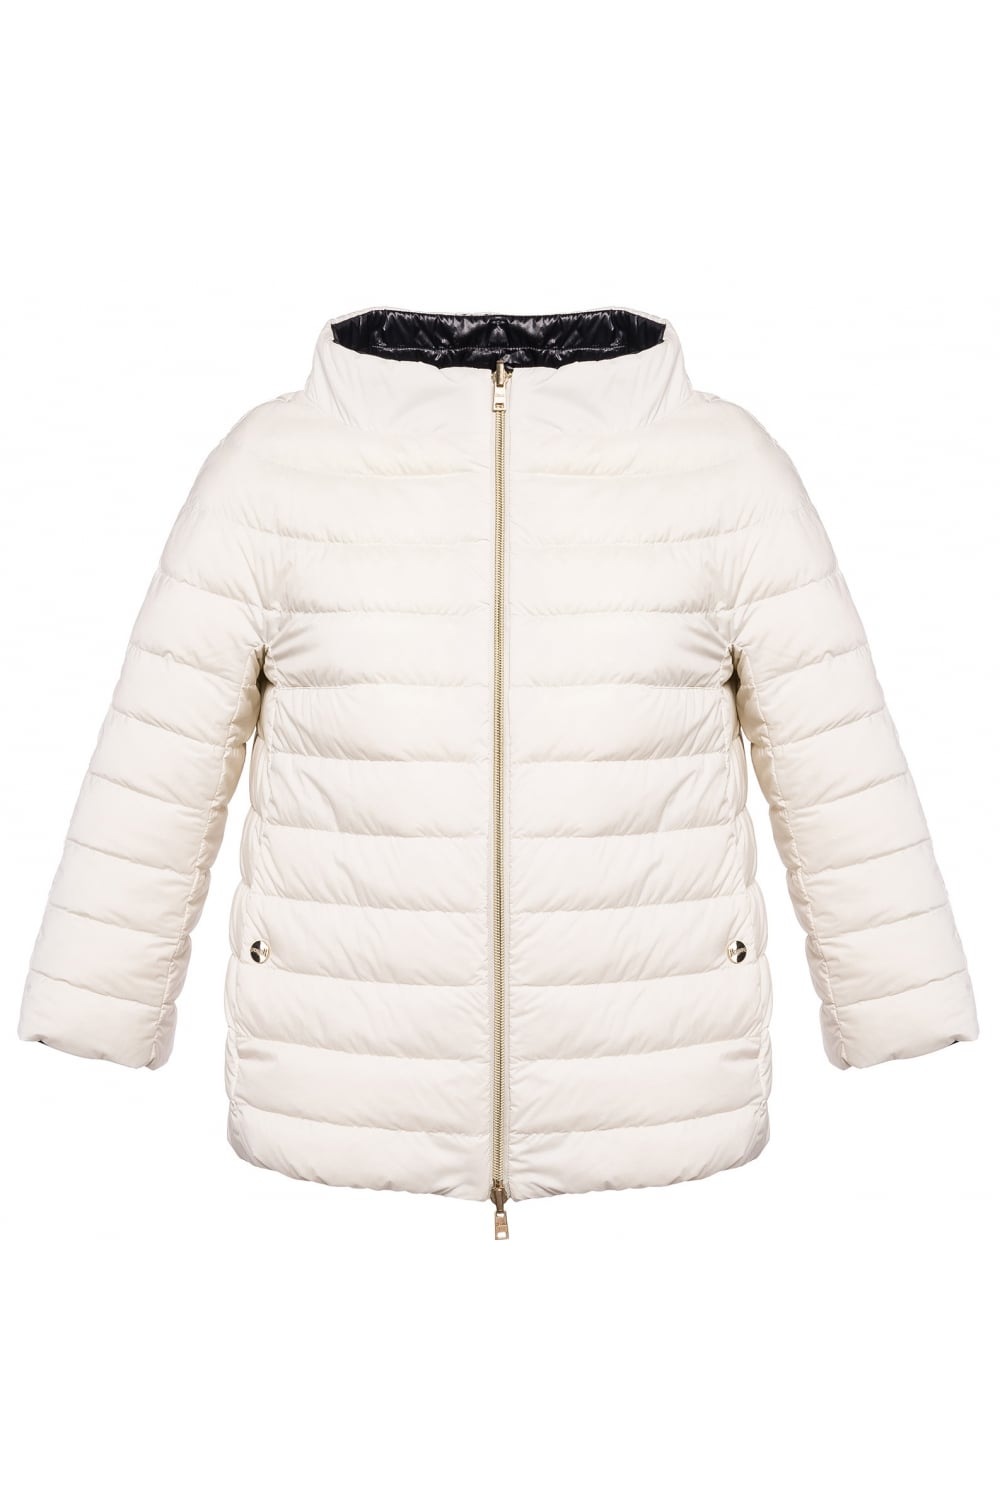 728a82982 HERNO Herno Women's P10793D Woven Black/White Jacket - WOMAN from ...